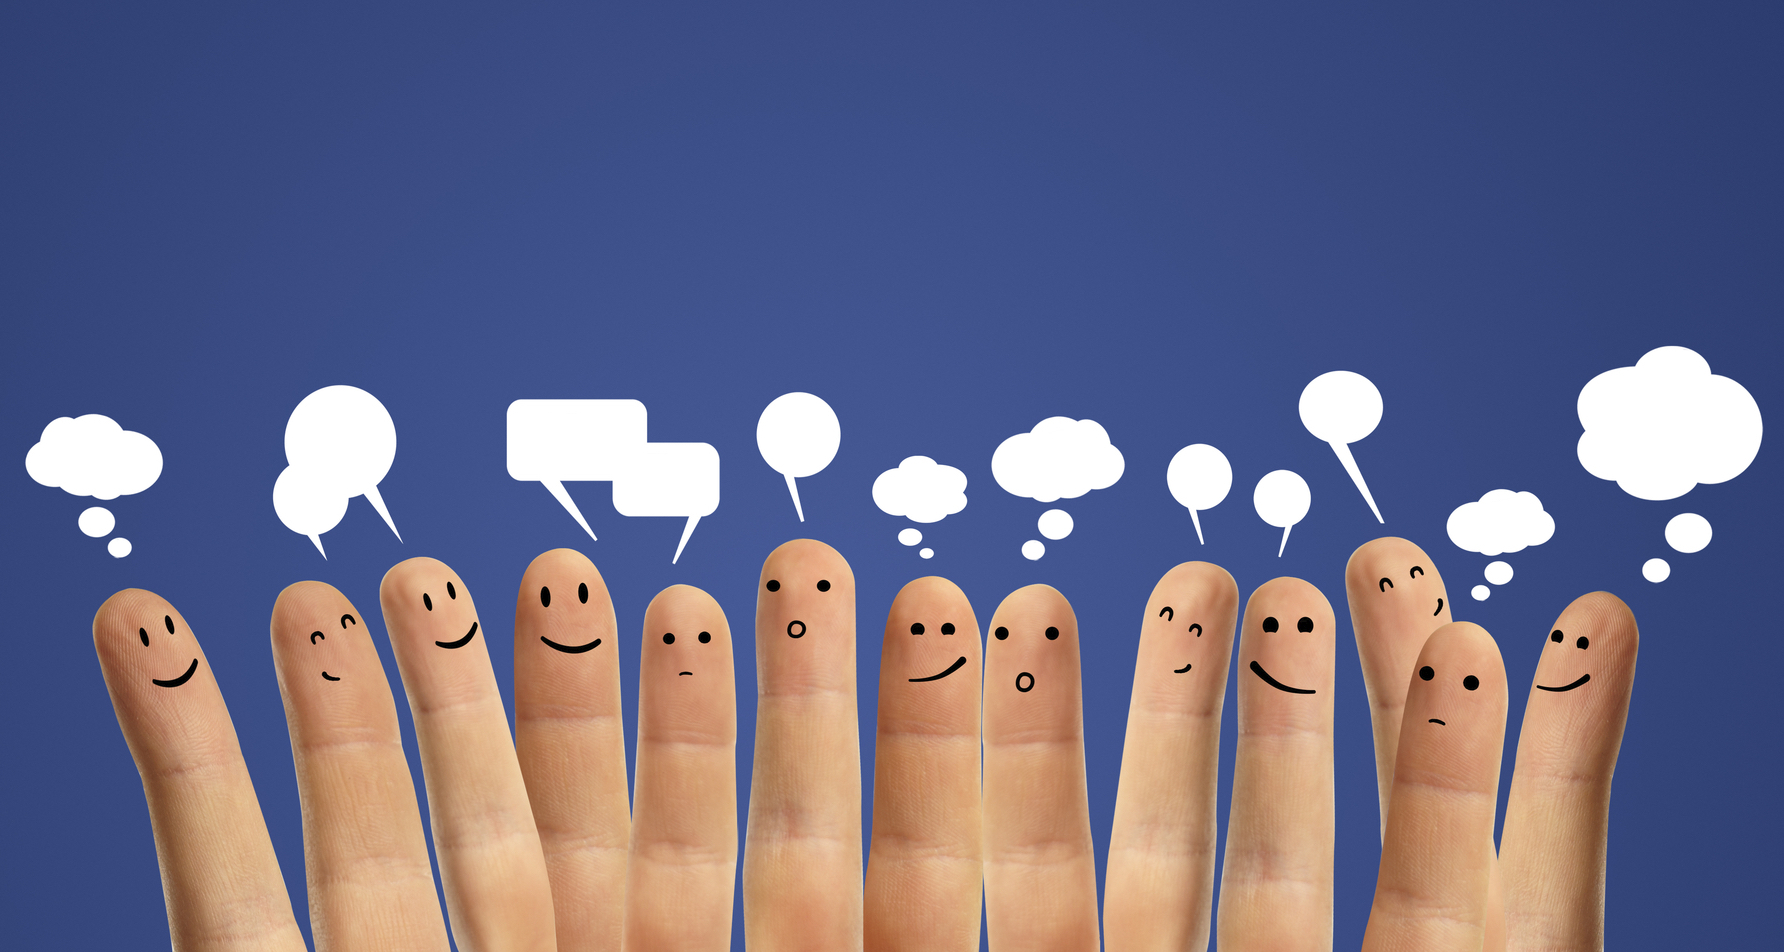 Take your brand-customer relationships to the next level by building a community